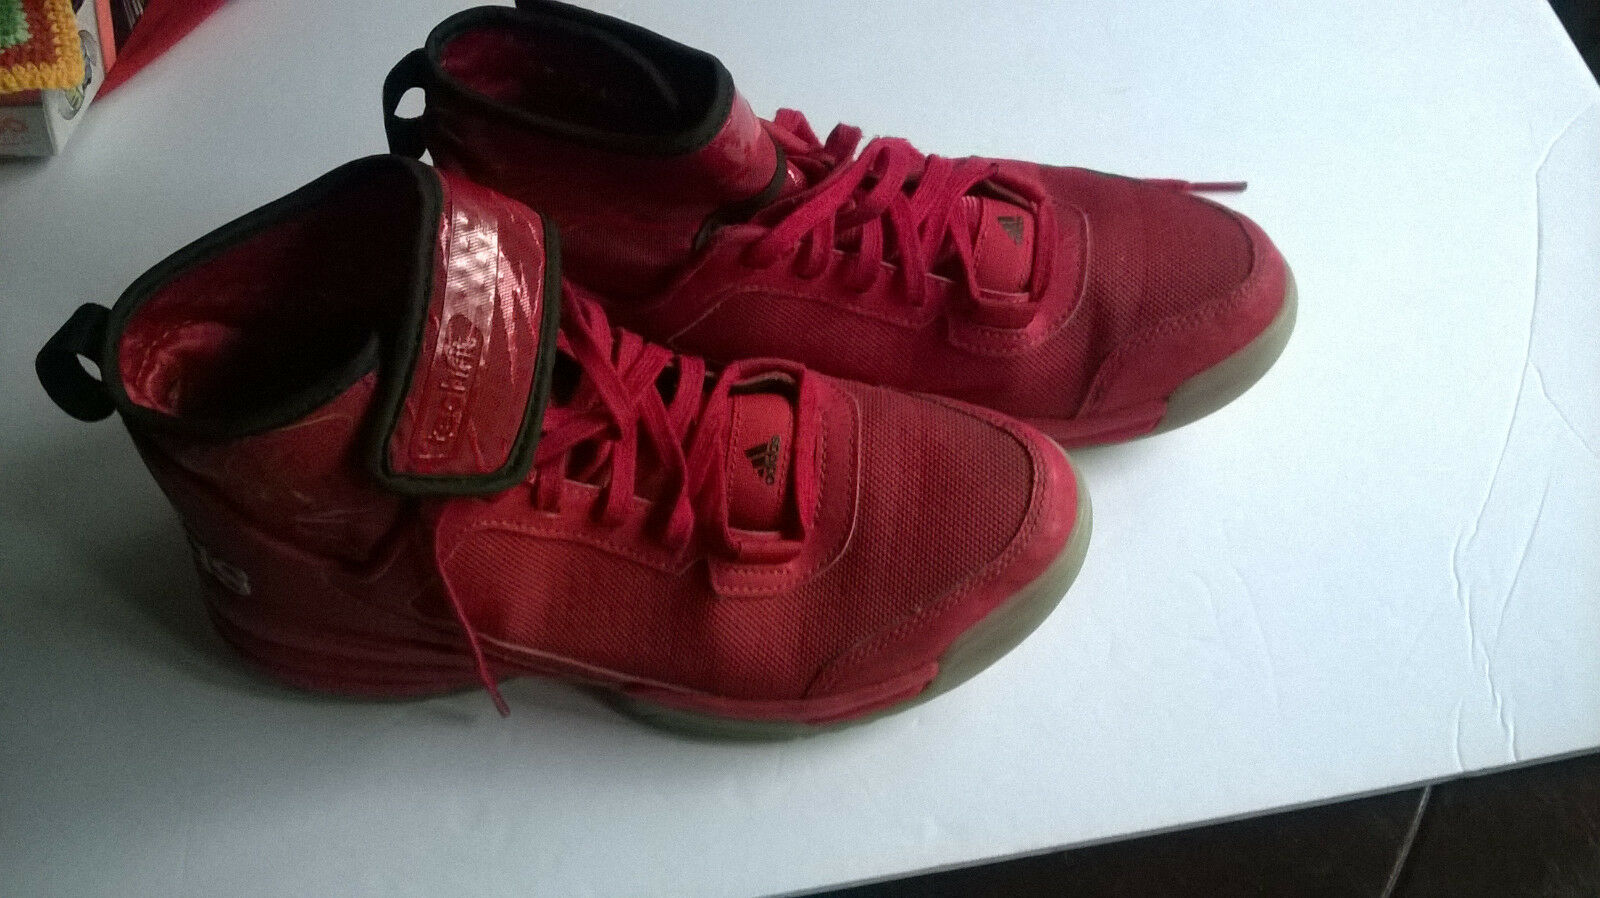 ADIDAS Dual Threat TechFit Red Athletic Basketball Shoes Sneakers  Comfortable Cheap and beautiful fashion